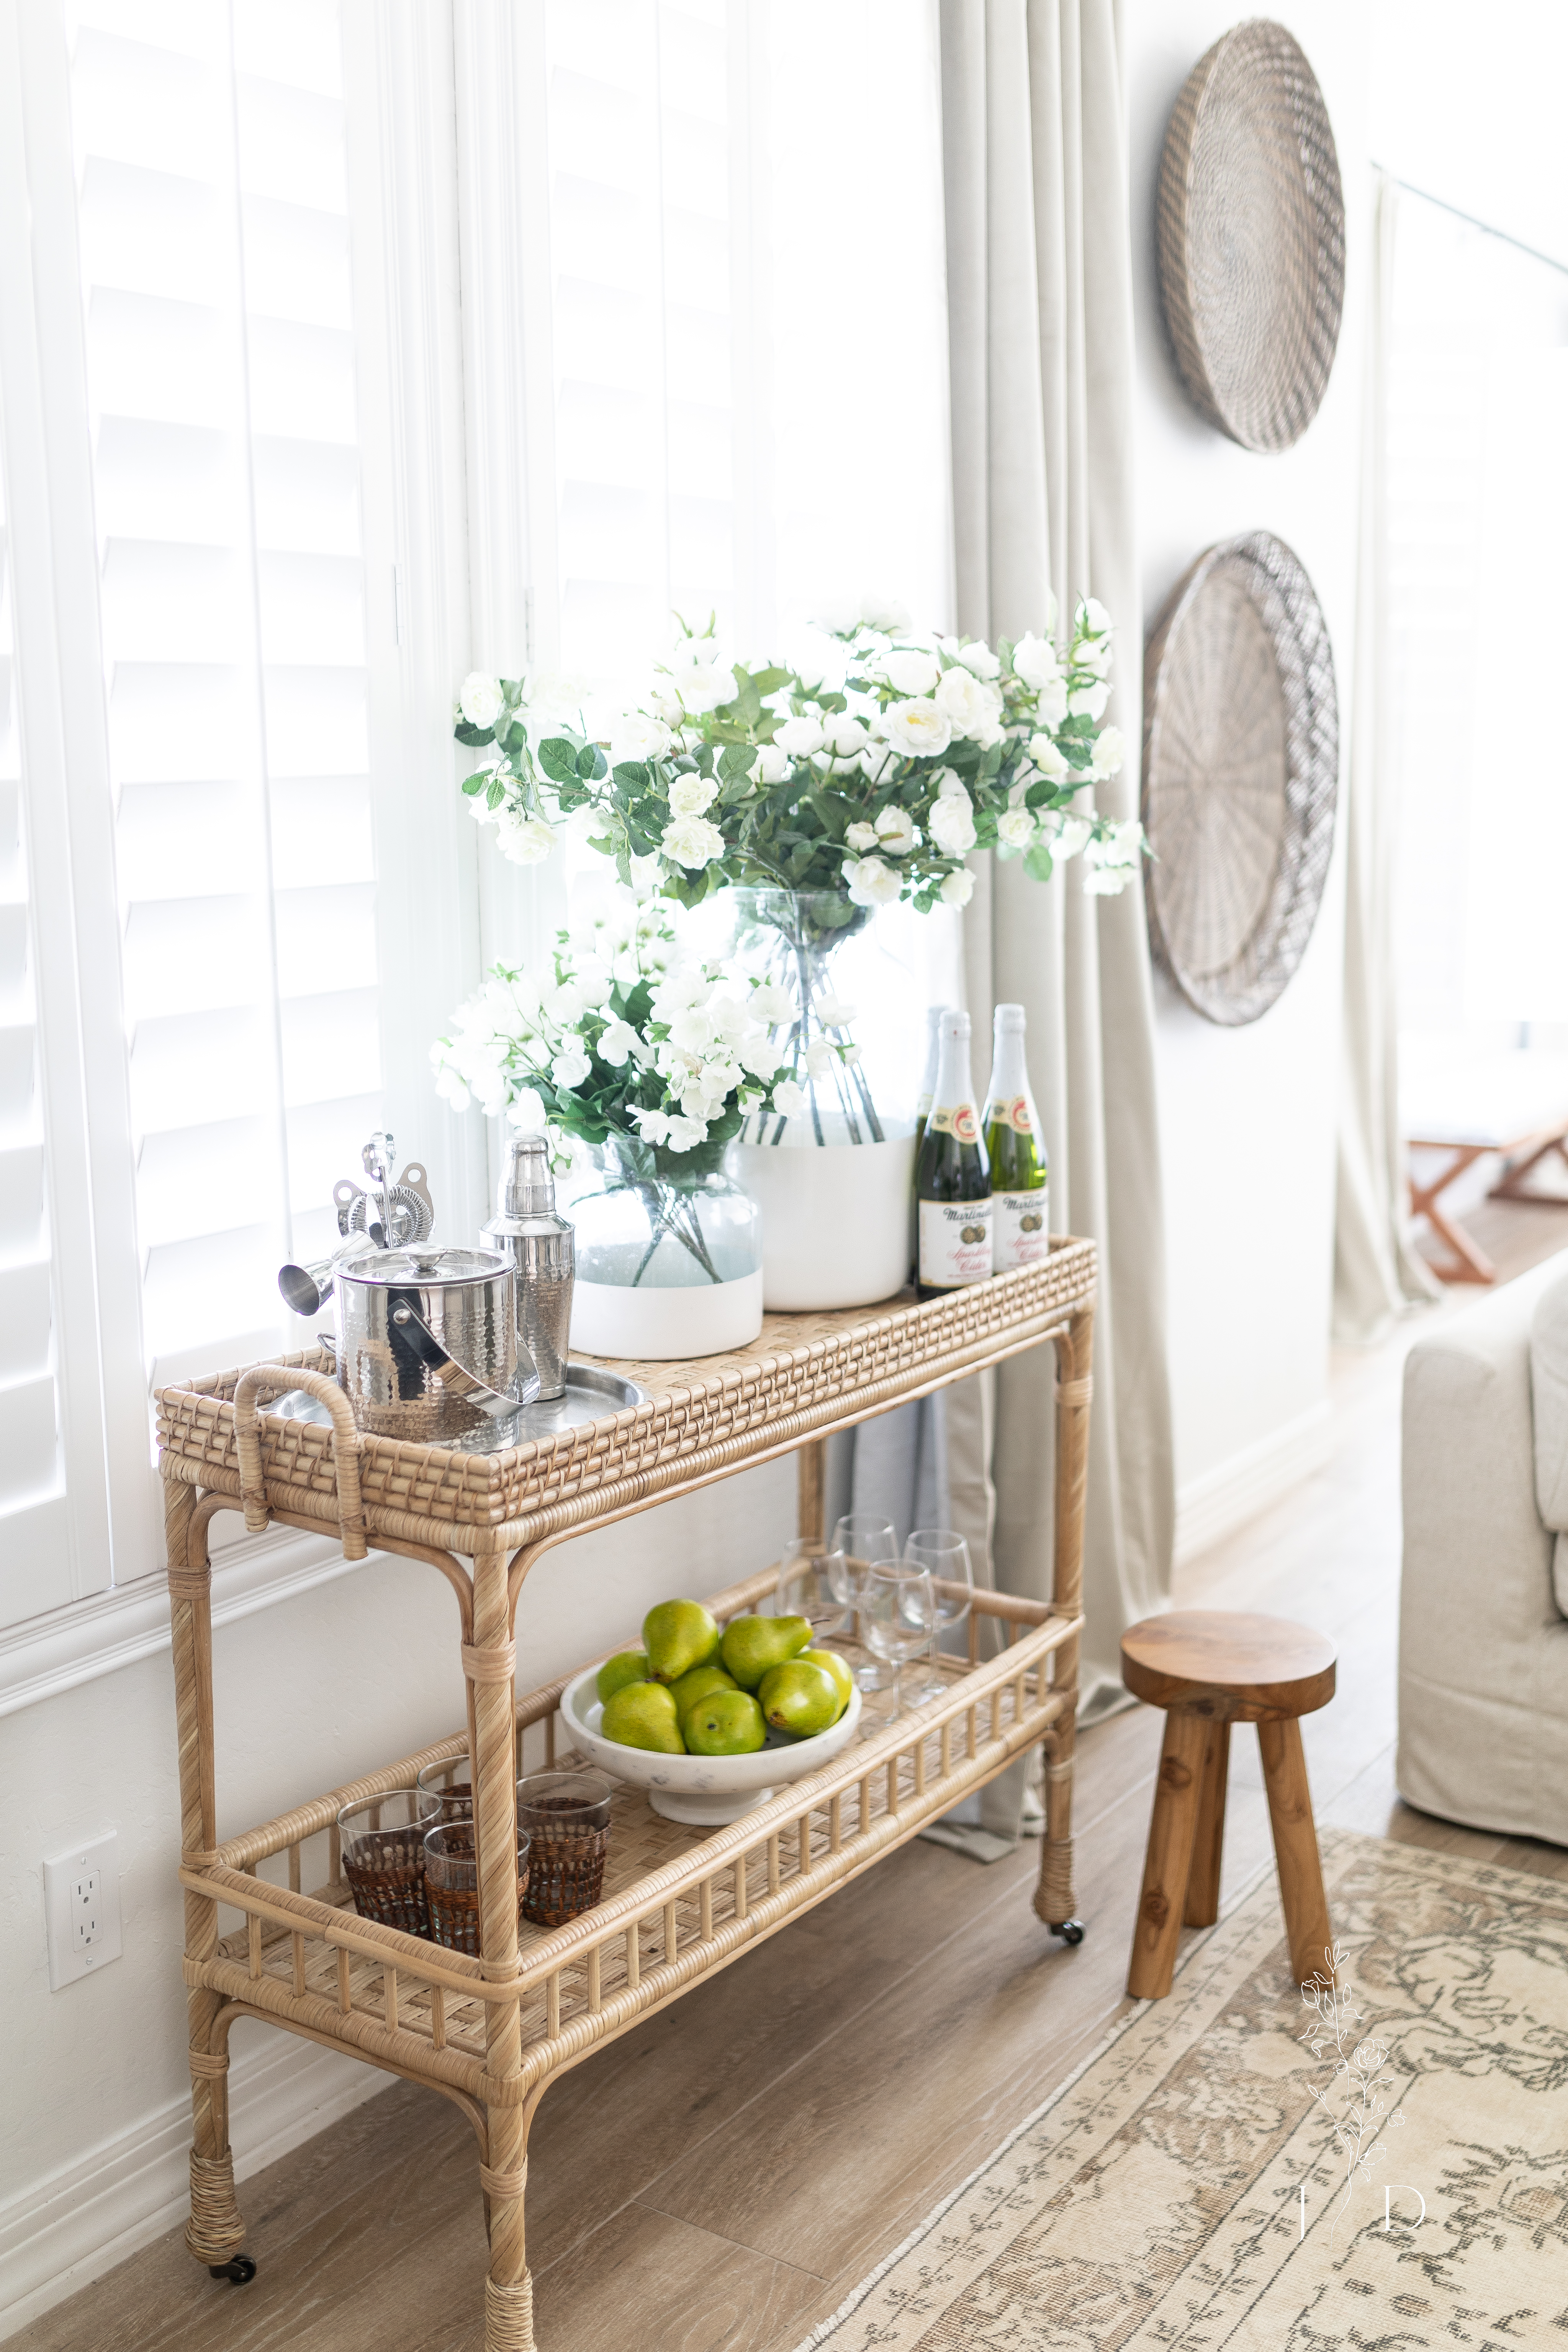 South Seas Bar Cart. One of Serena and Lily best products.